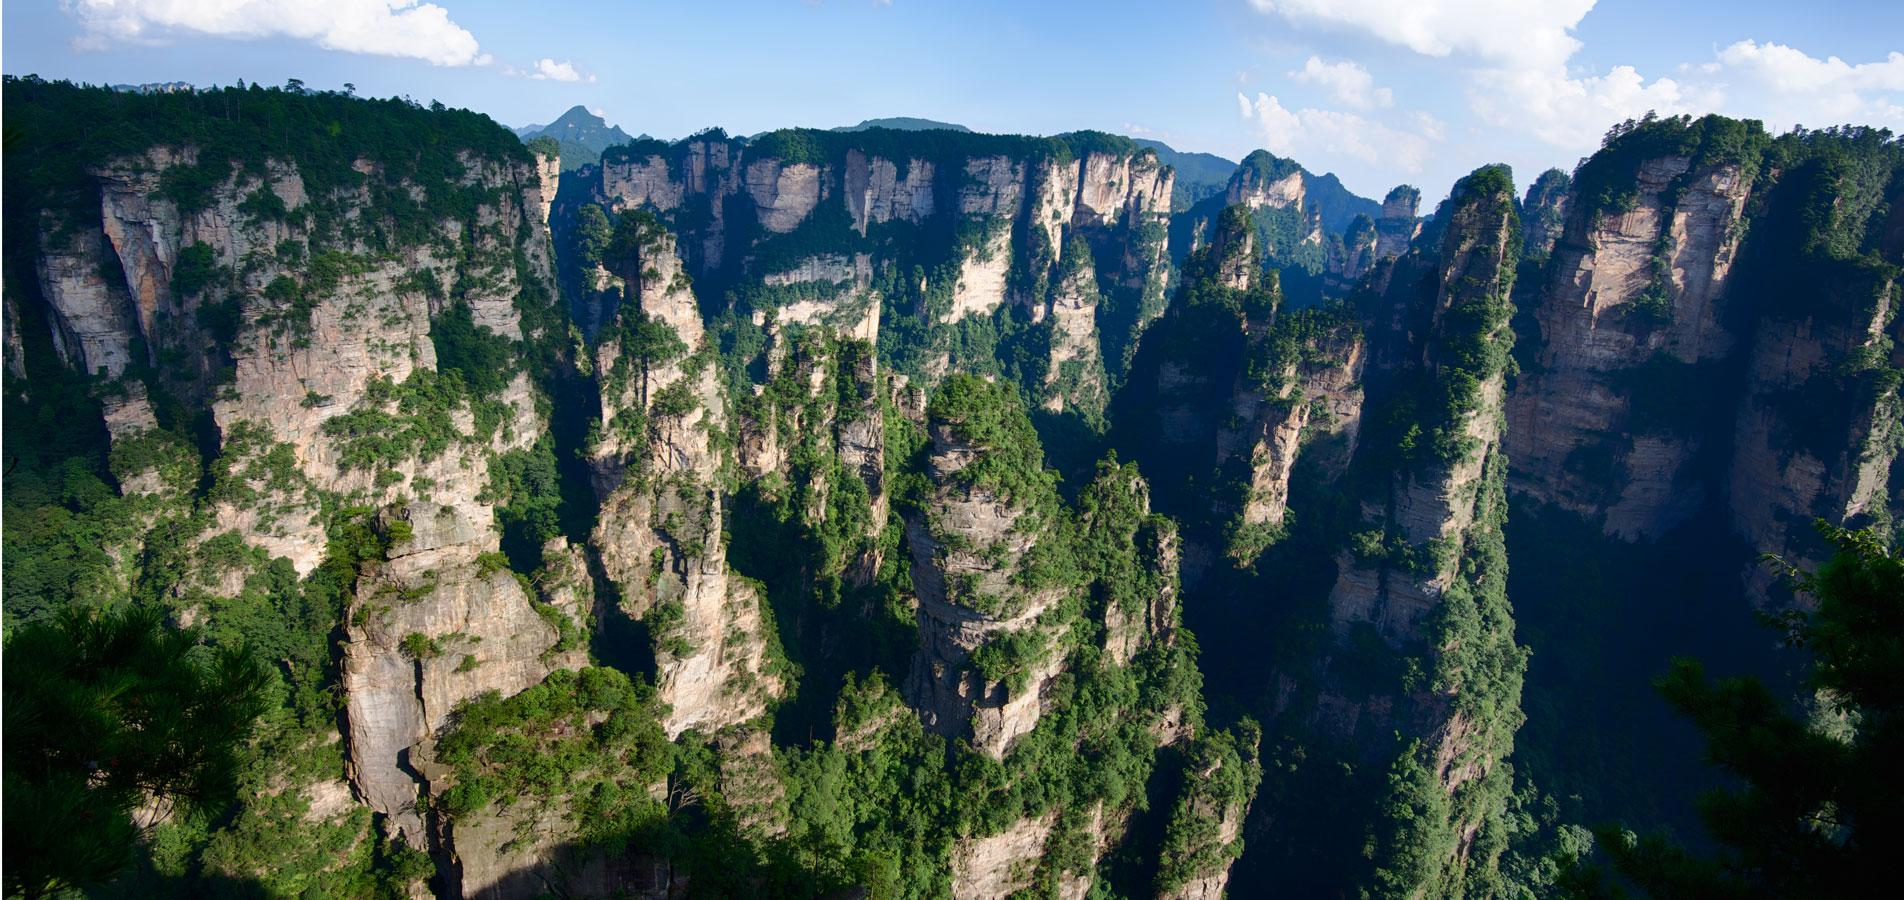 Parc forestier national de Zhangjiajie